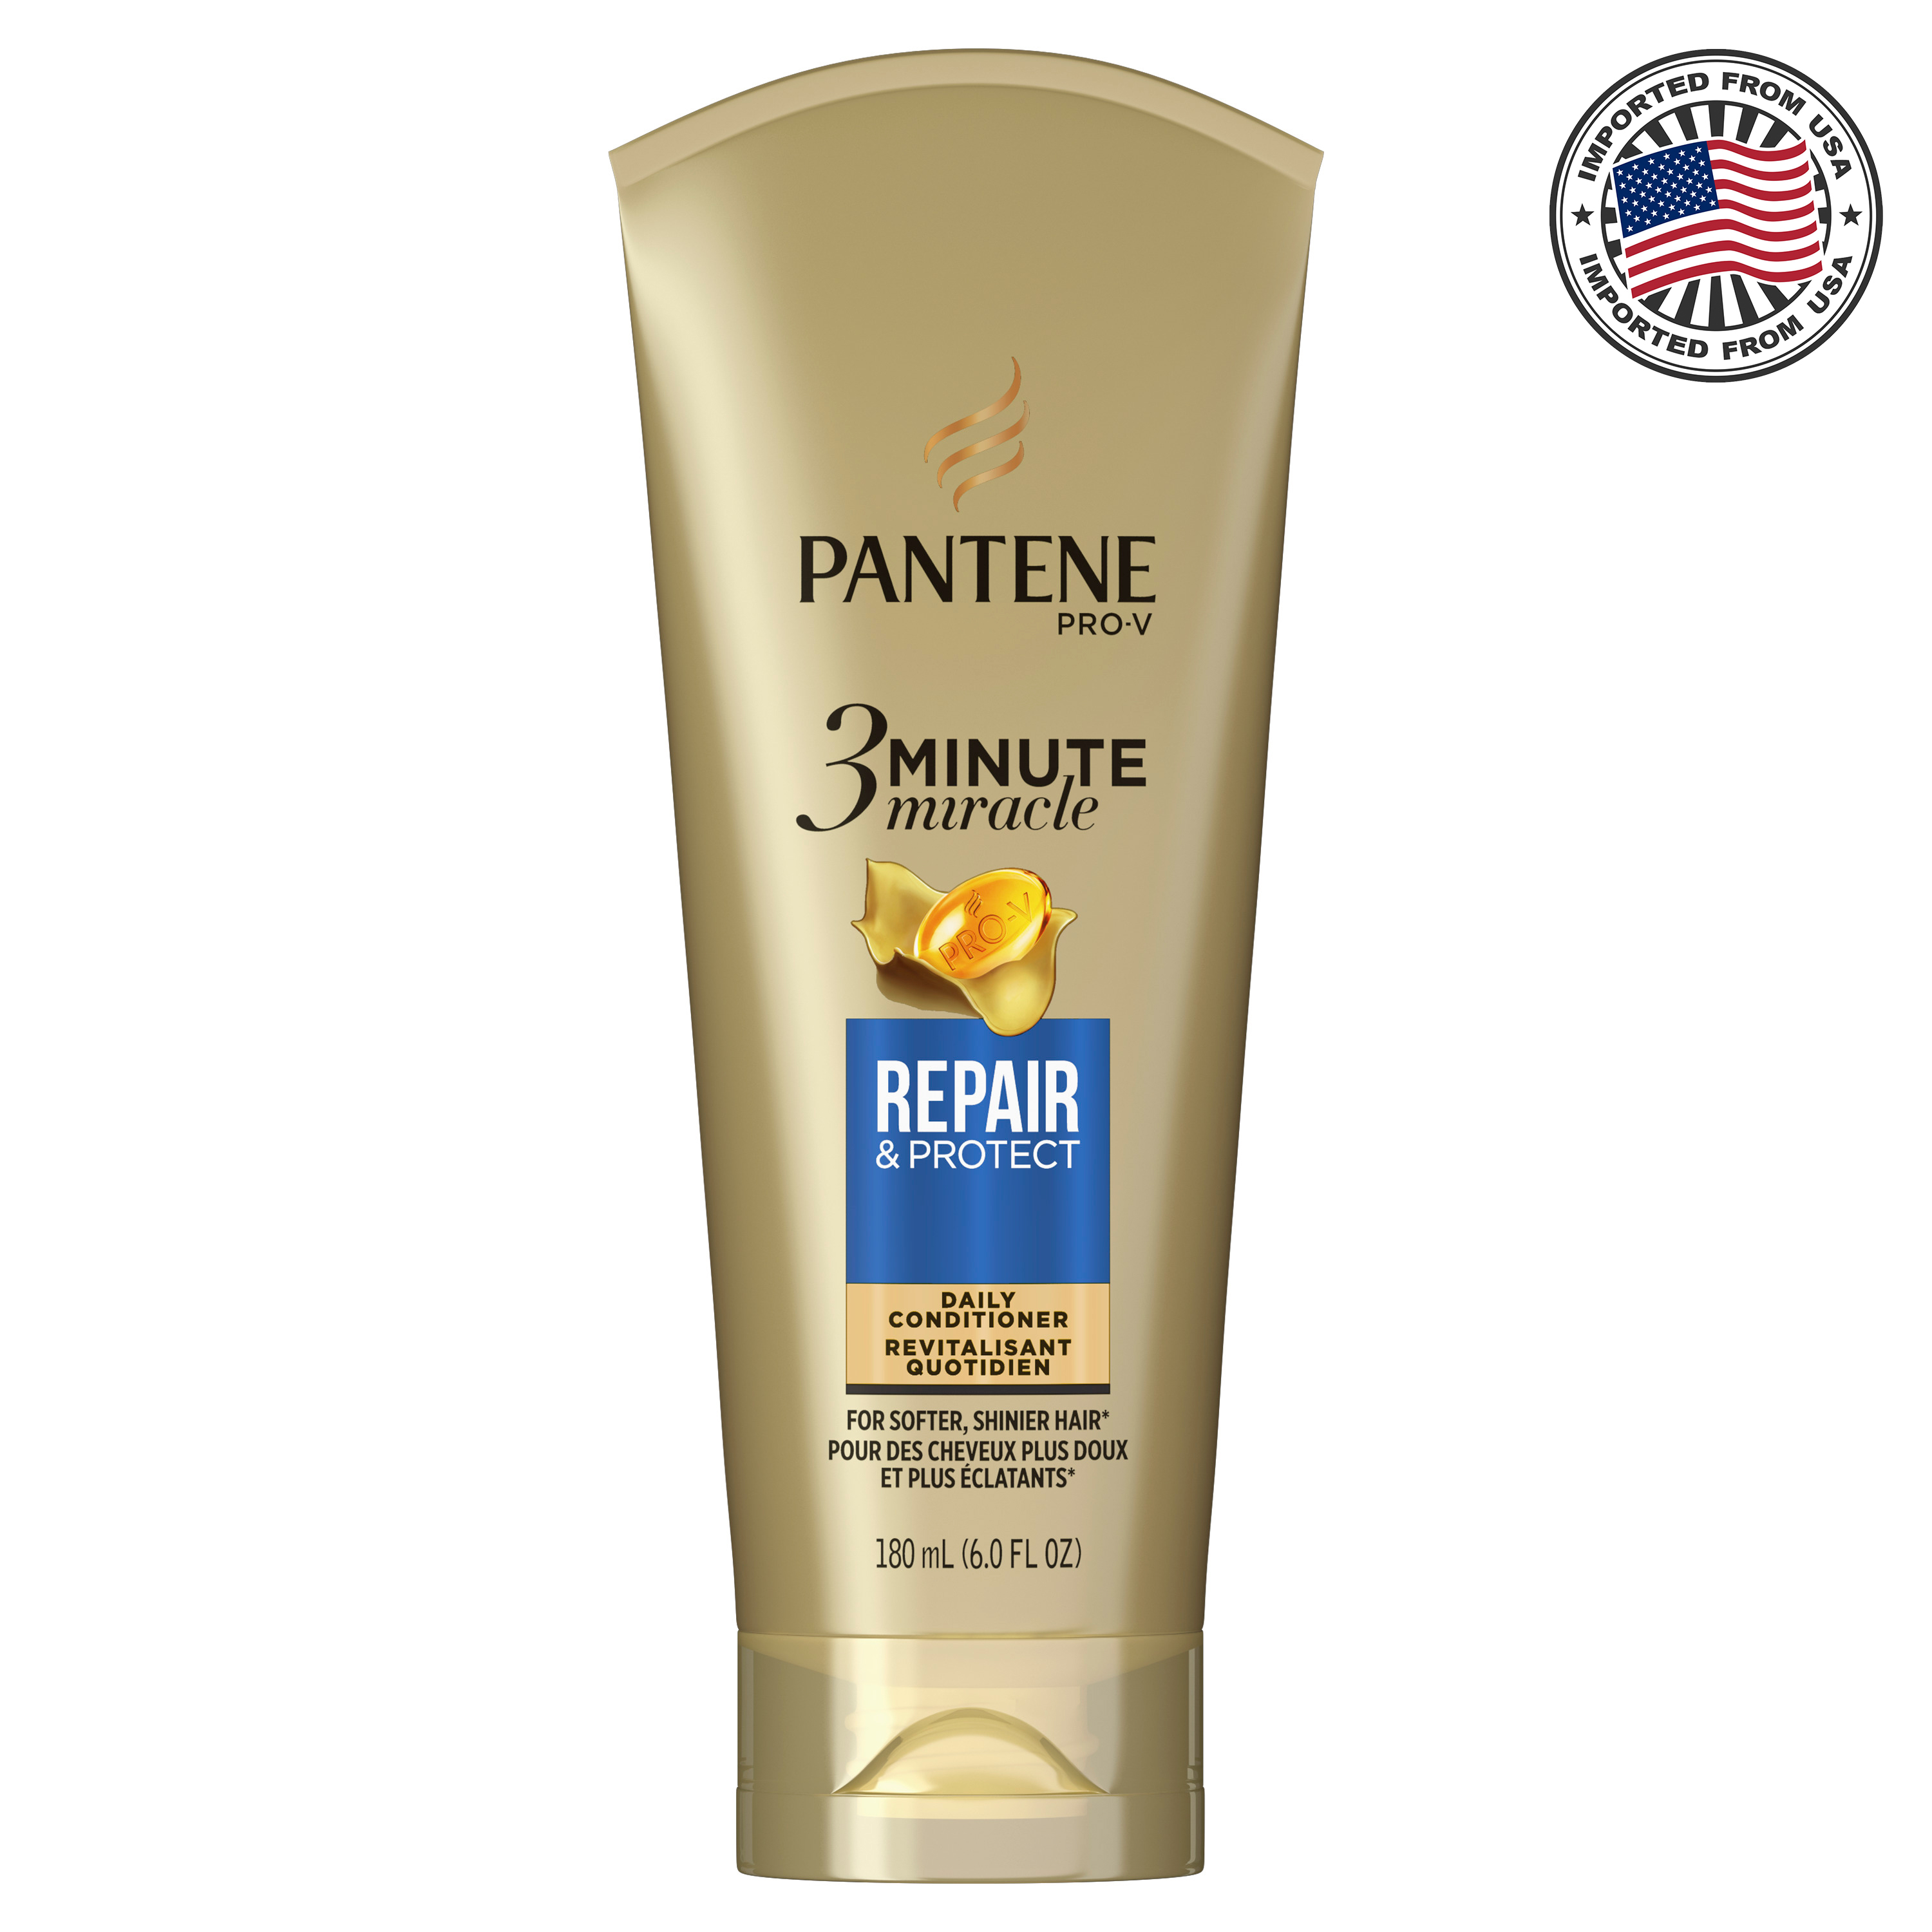 Pantene Repair & Protect 3 Minute Miracle Daily Conditioner 180 ml